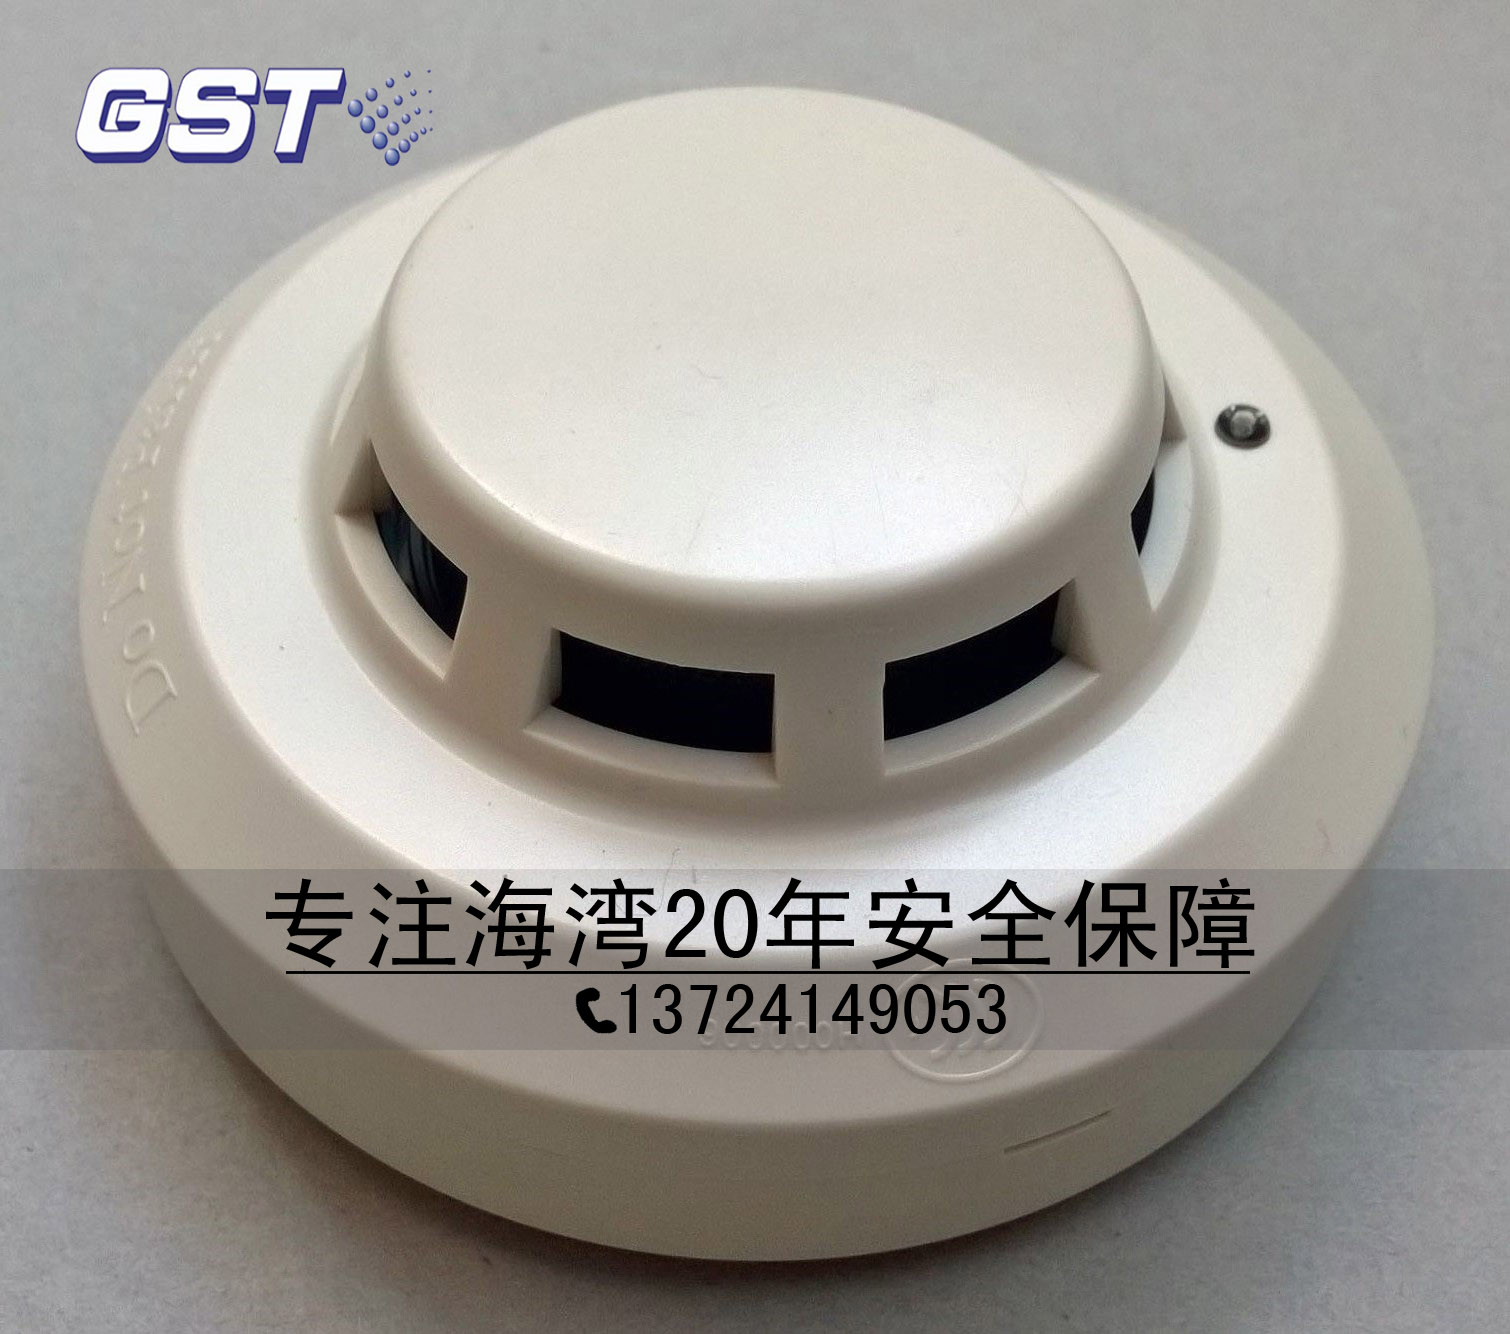 The first JTY-GD-G3T smoke detector type photoelectric smoke detection head genuine wholesale high quantity medicine detection type blood and marrow test slides